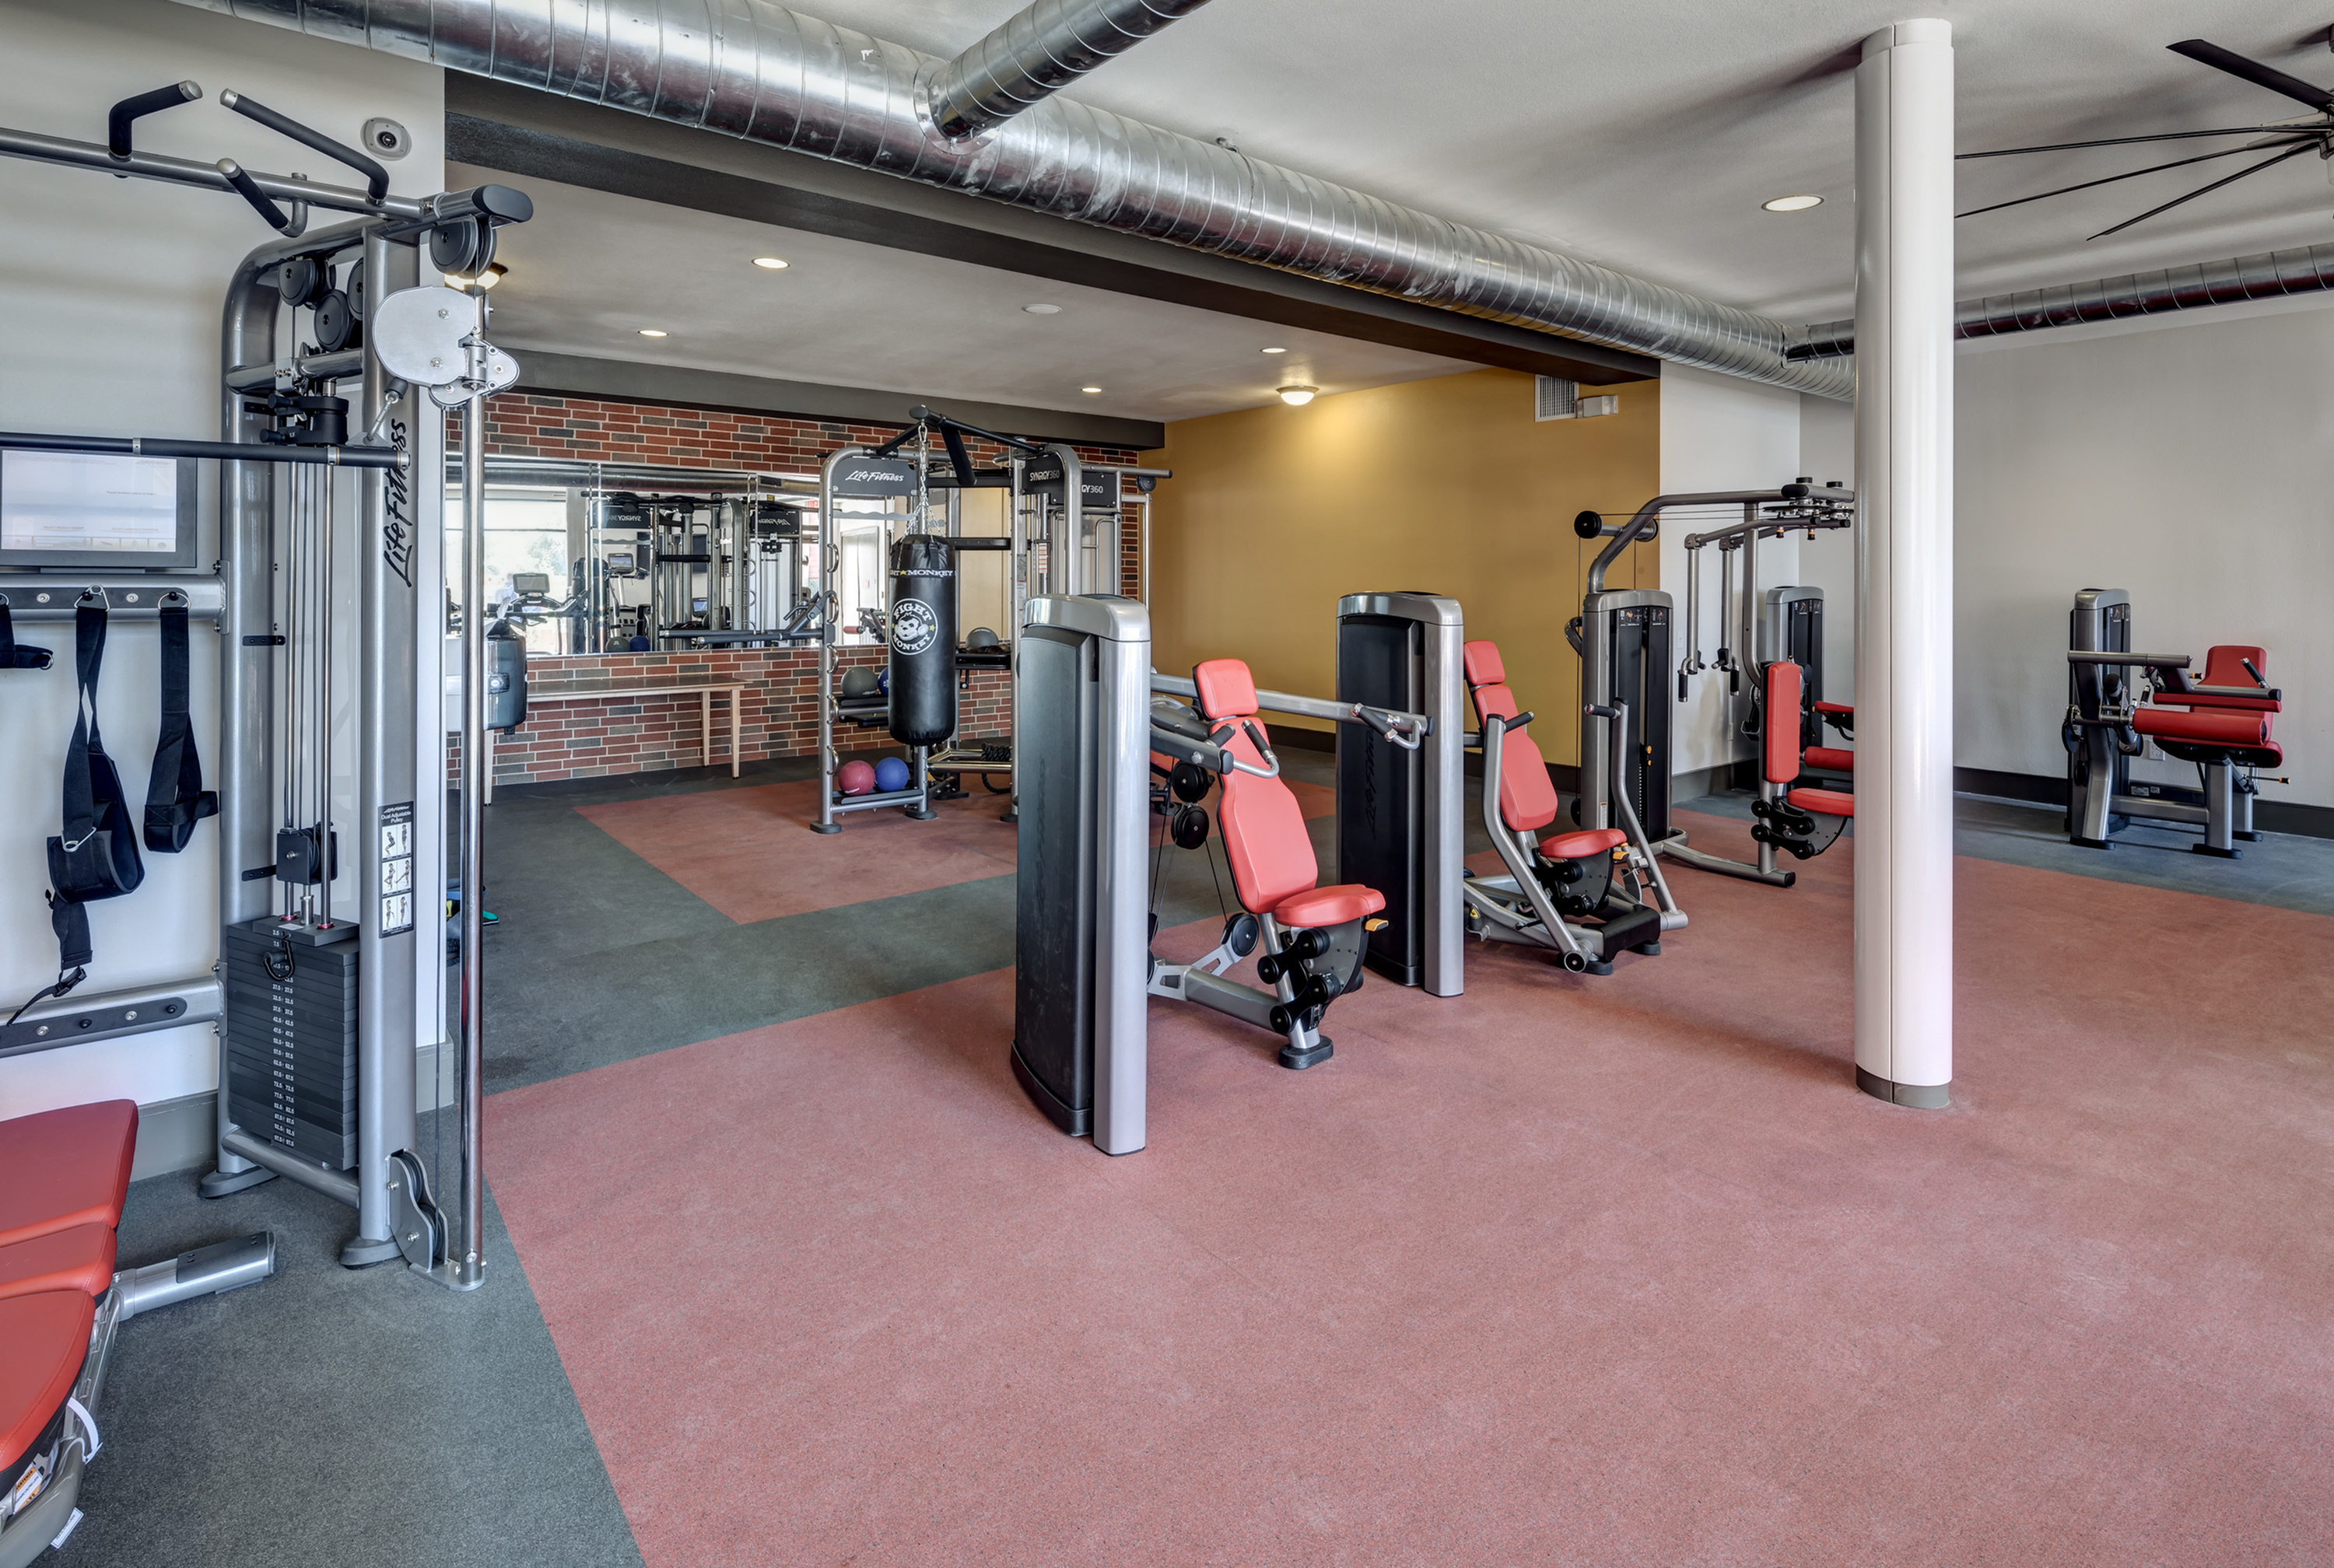 Image of 24 Hour Fitness Gym for Millennium Apartments